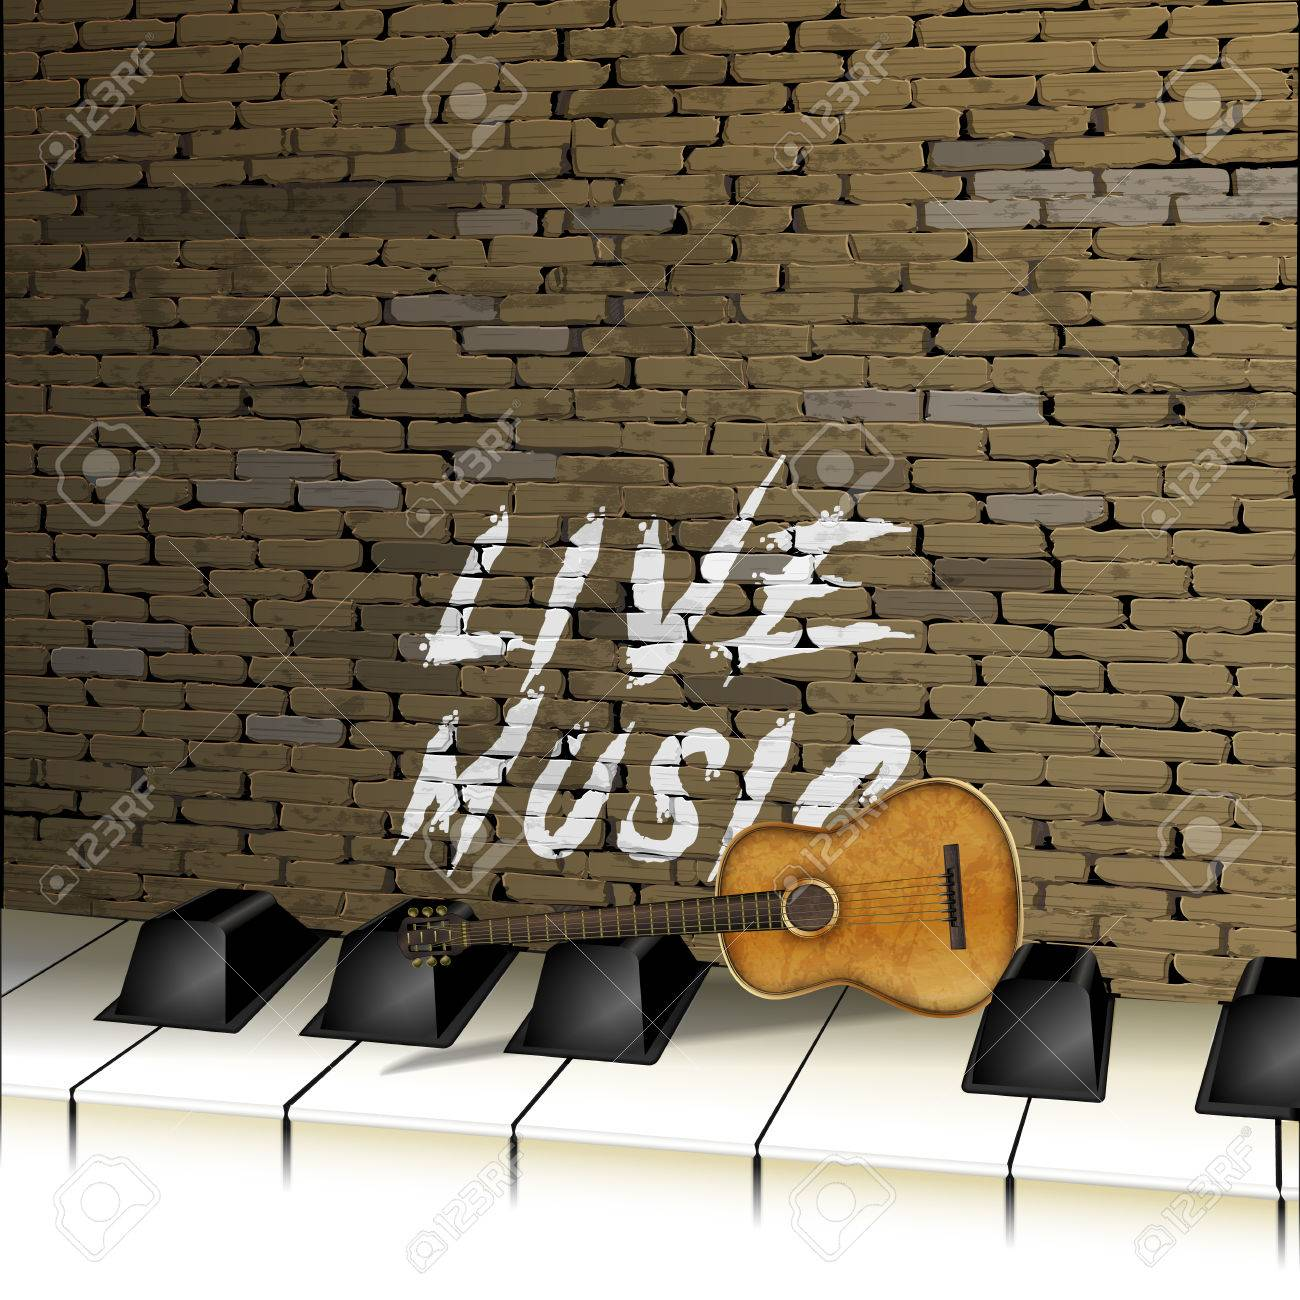 Musical Background Brick Wall Piano Keys And Guitar Graffiti Inscription Live Music Stock